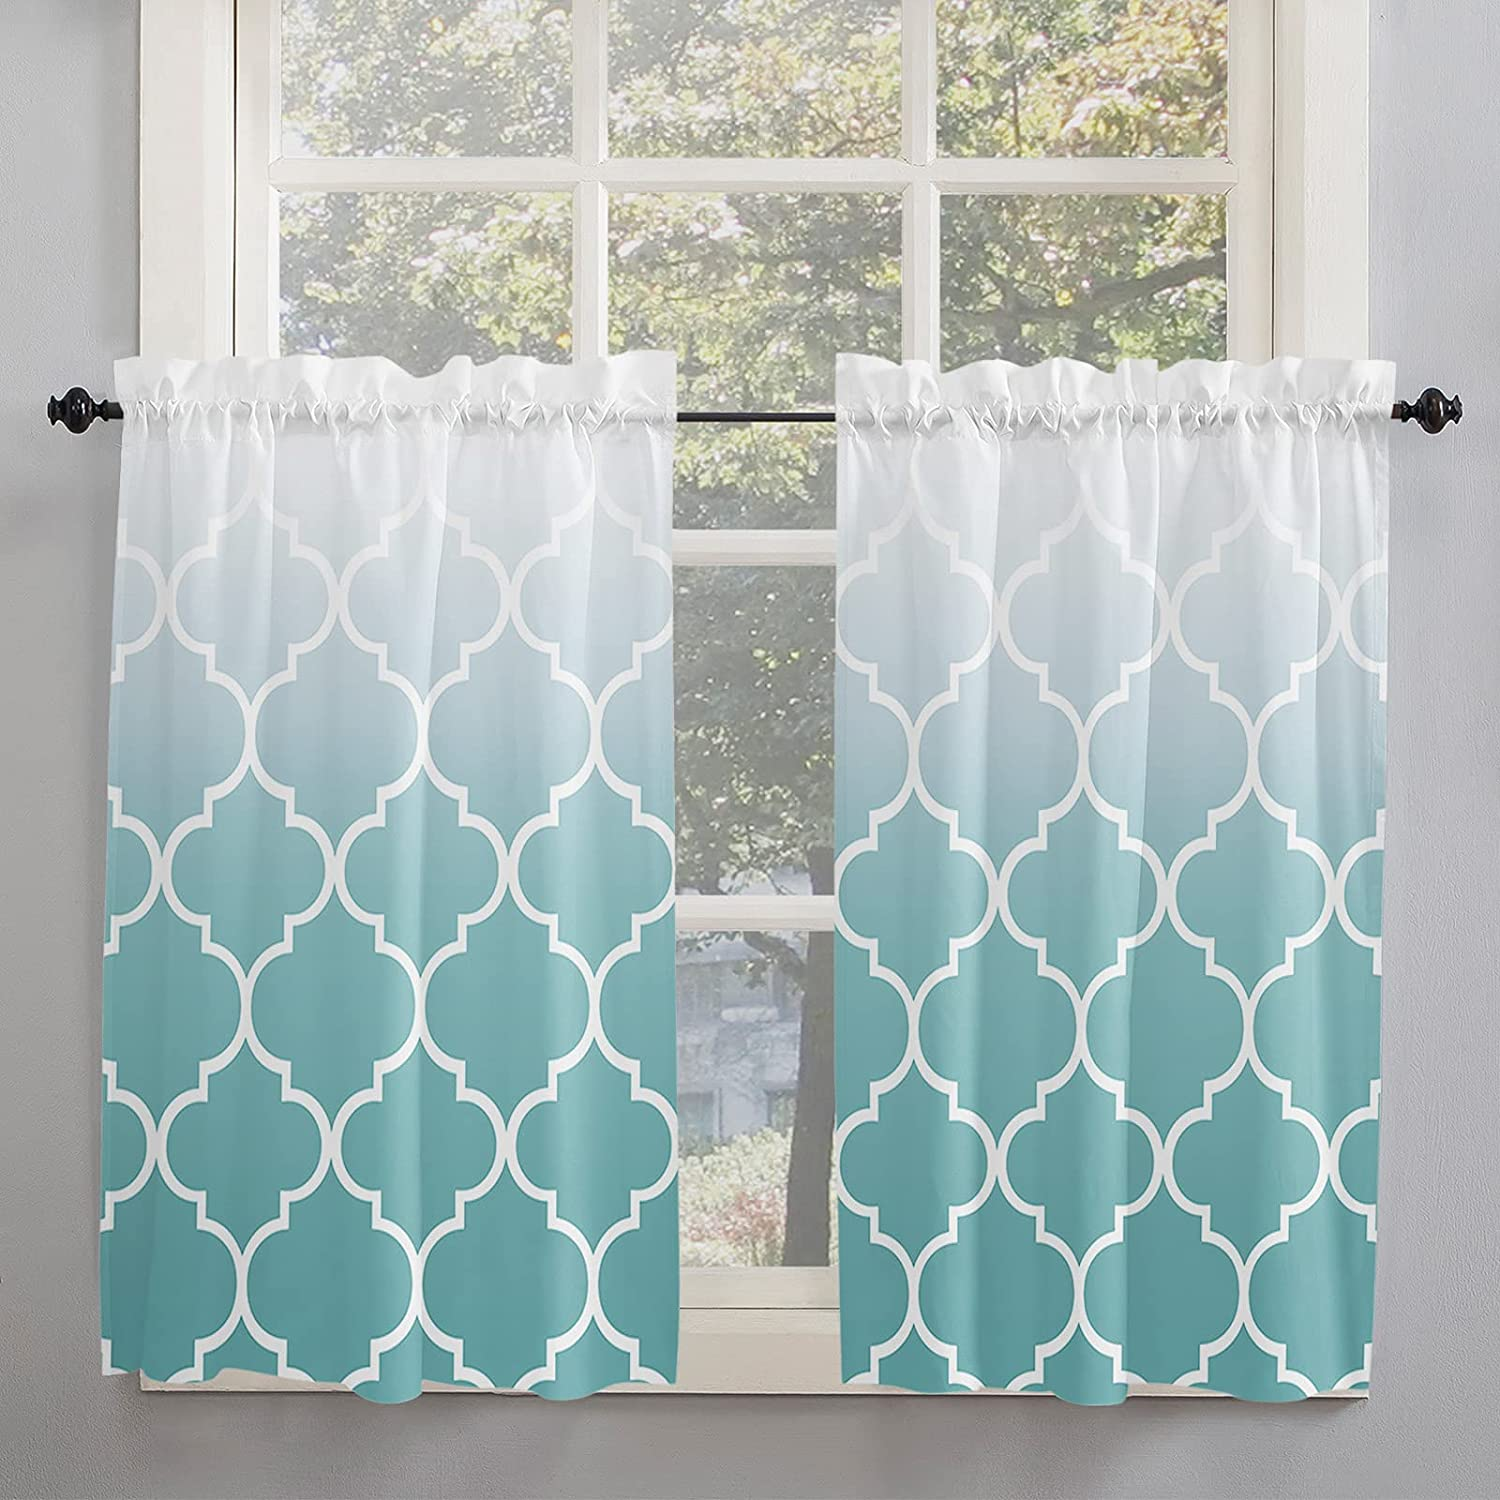 Cyan Turquoise Moroccan Geometric Super sale Ombre Kitchen Max 82% OFF Inch 54 Curtains